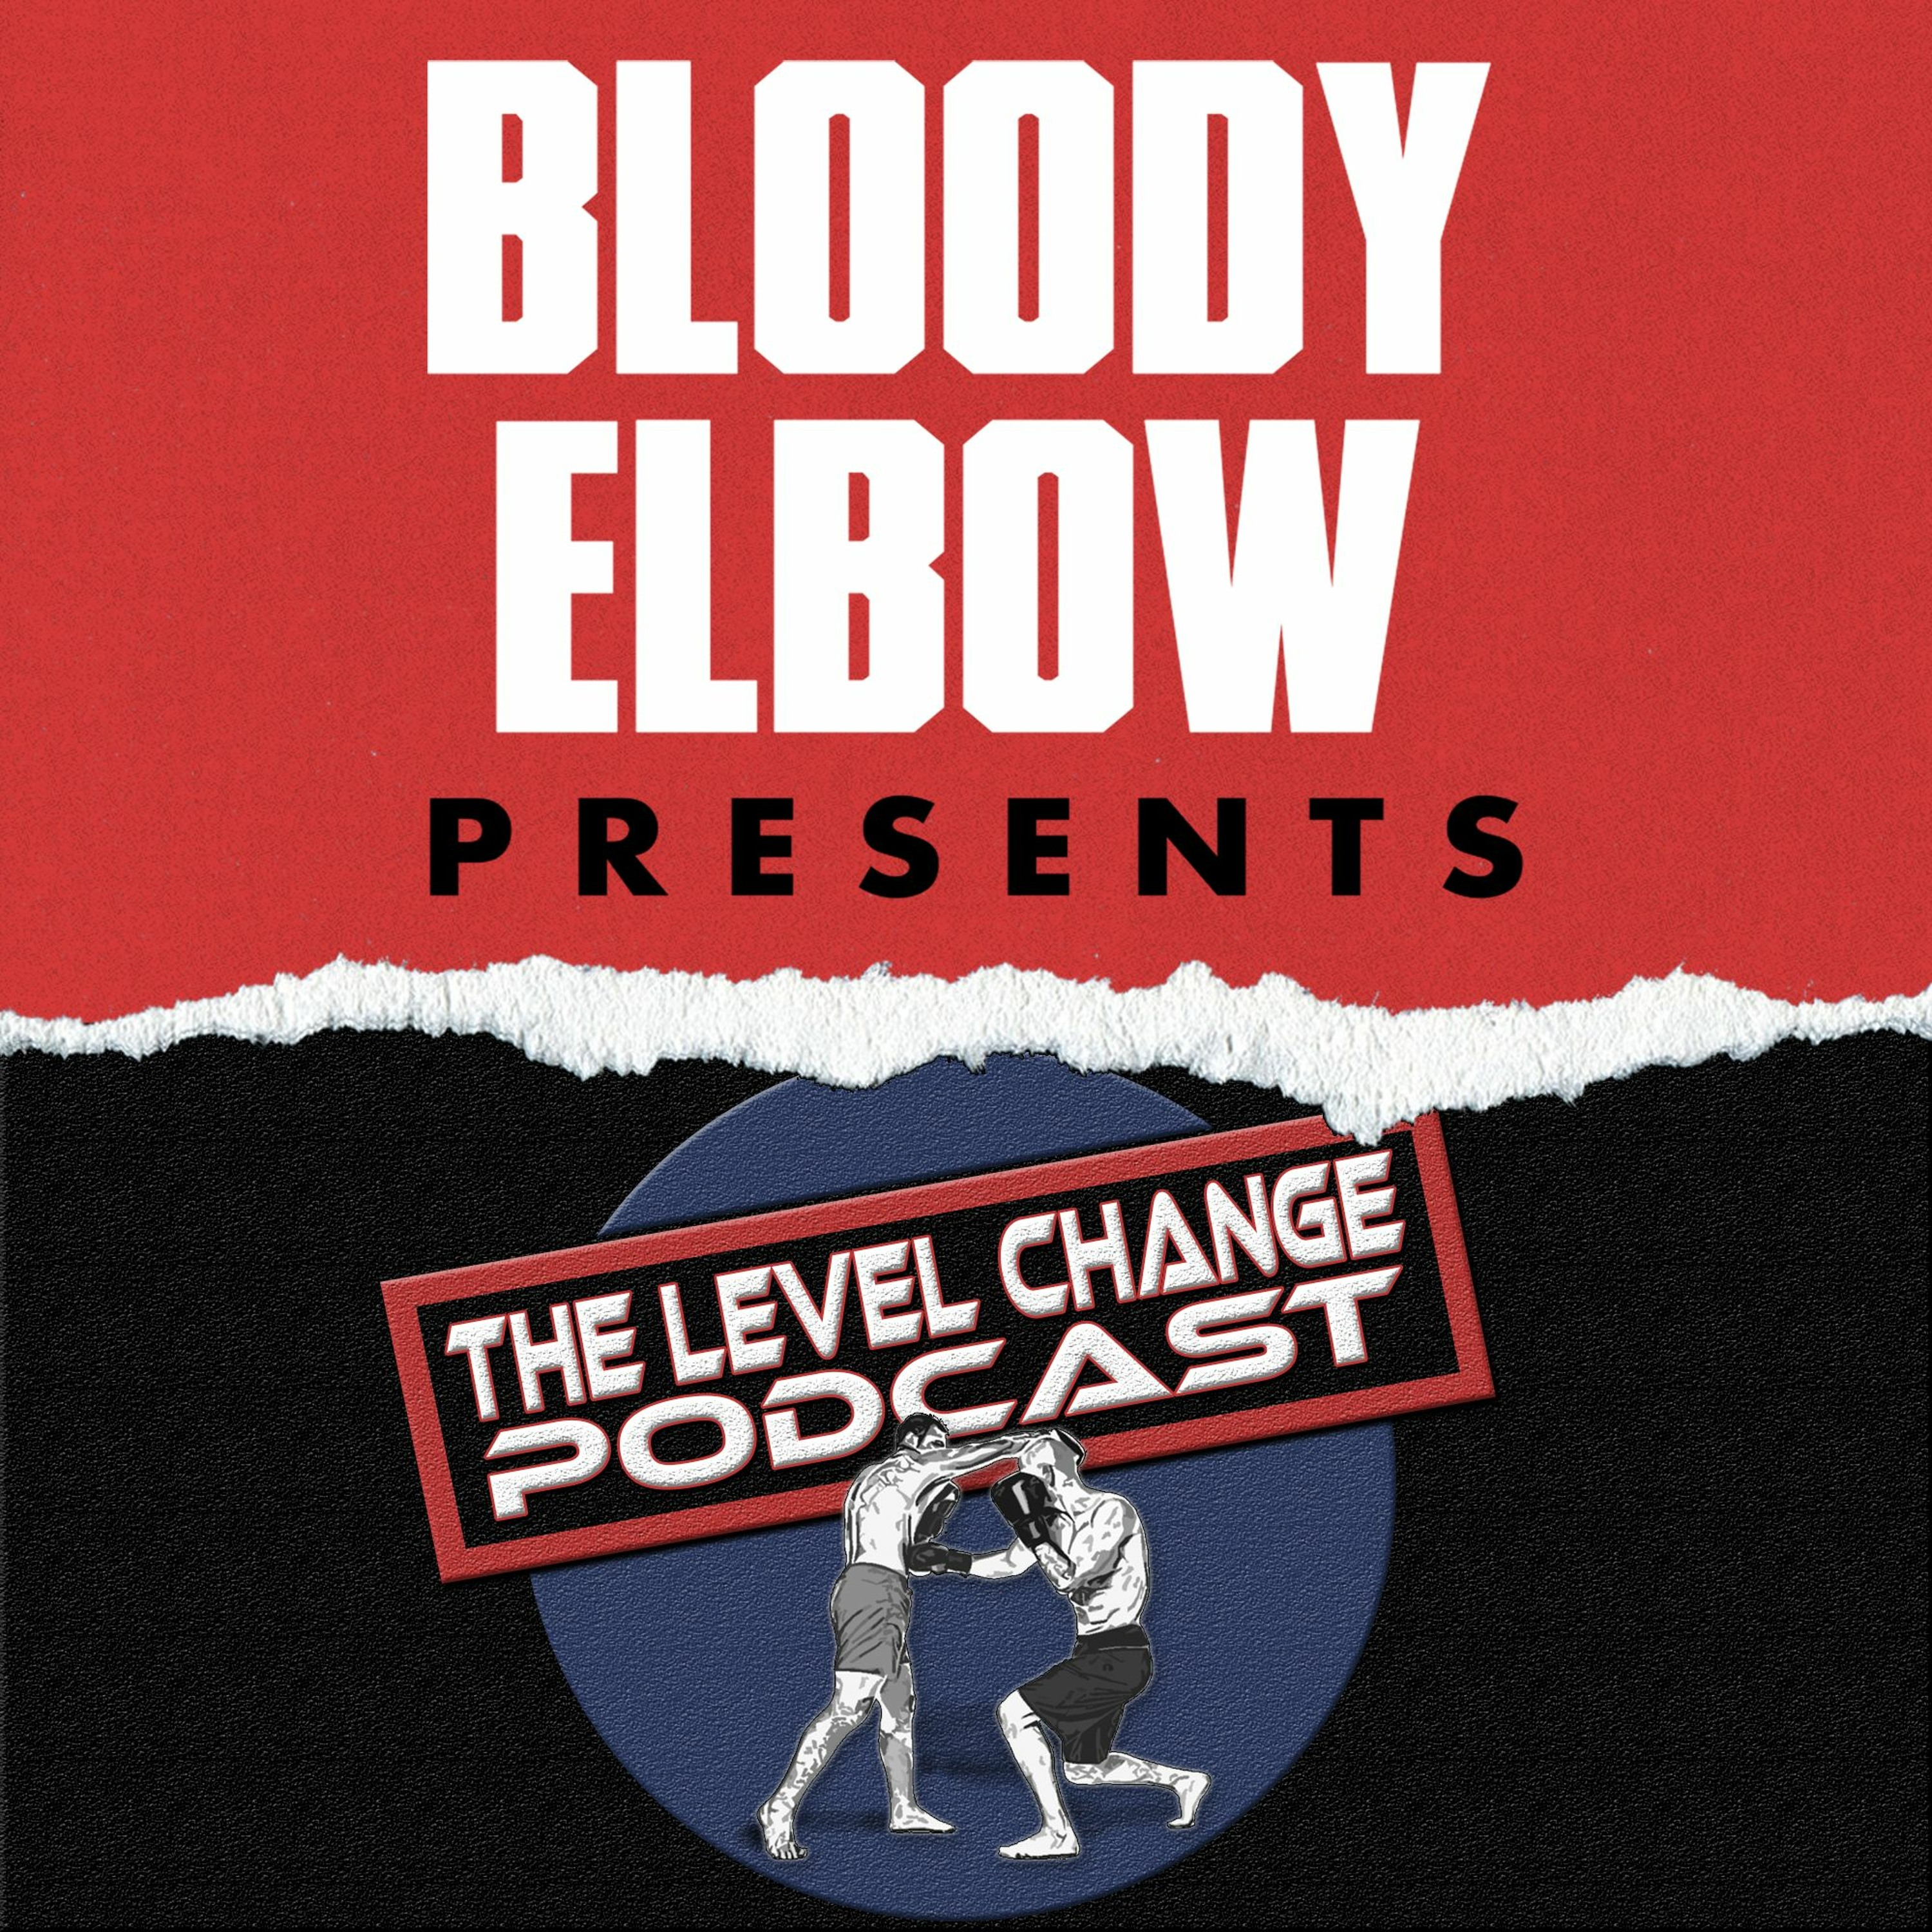 Sanko Set for UFC Commentary, Rogan Gets Covid, Fight Night Preview   The Level Change Podcast 139